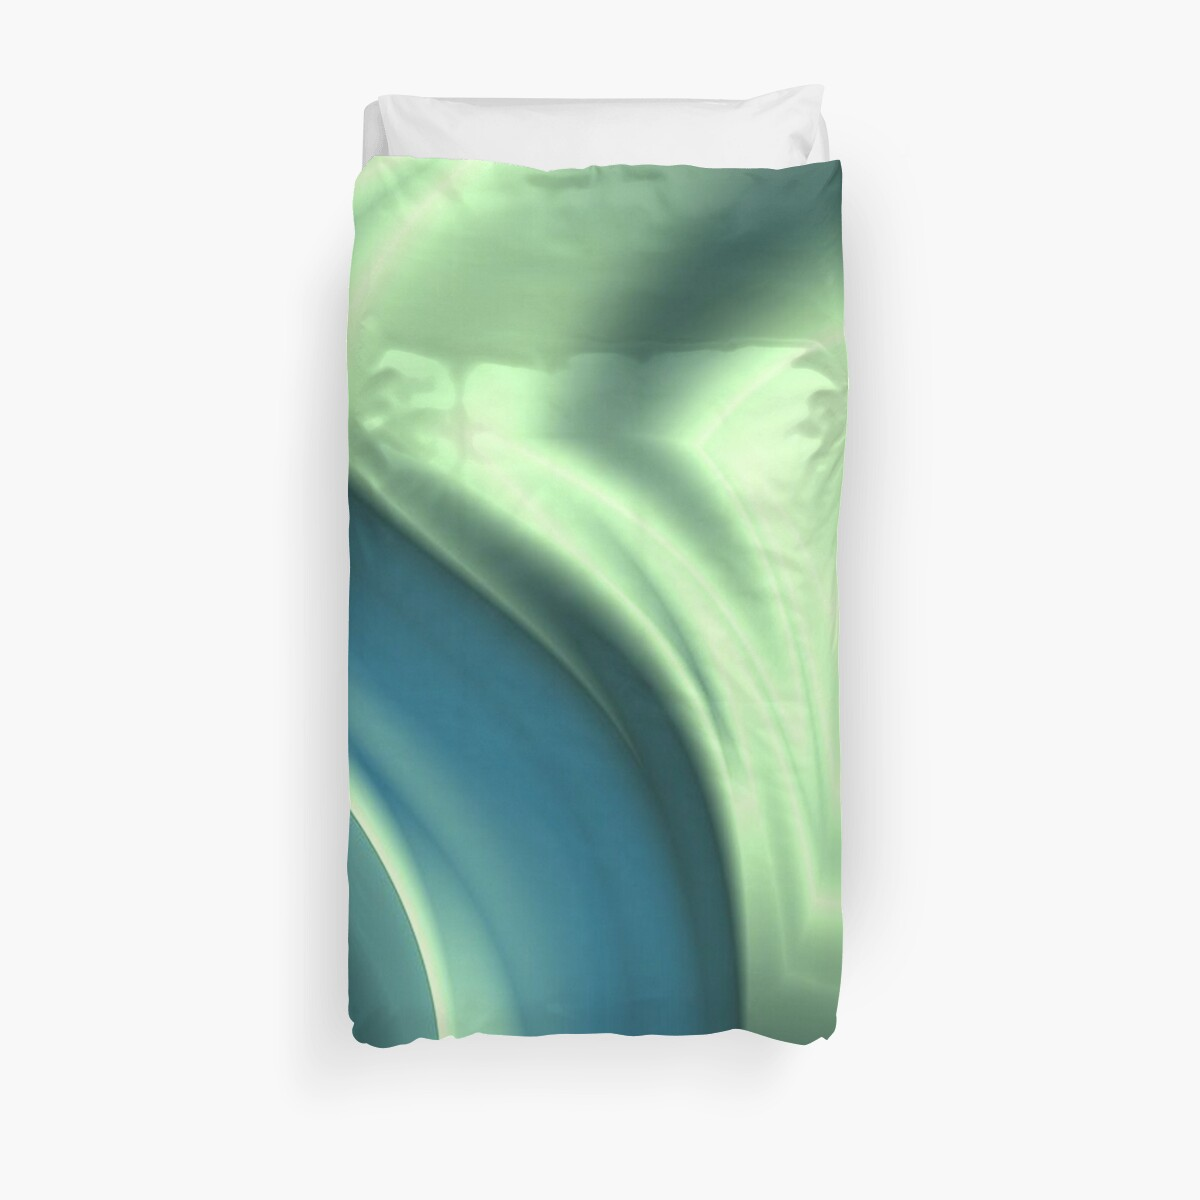 Basic Beliefs Abstract In Peppermint Green and Jade by taiche